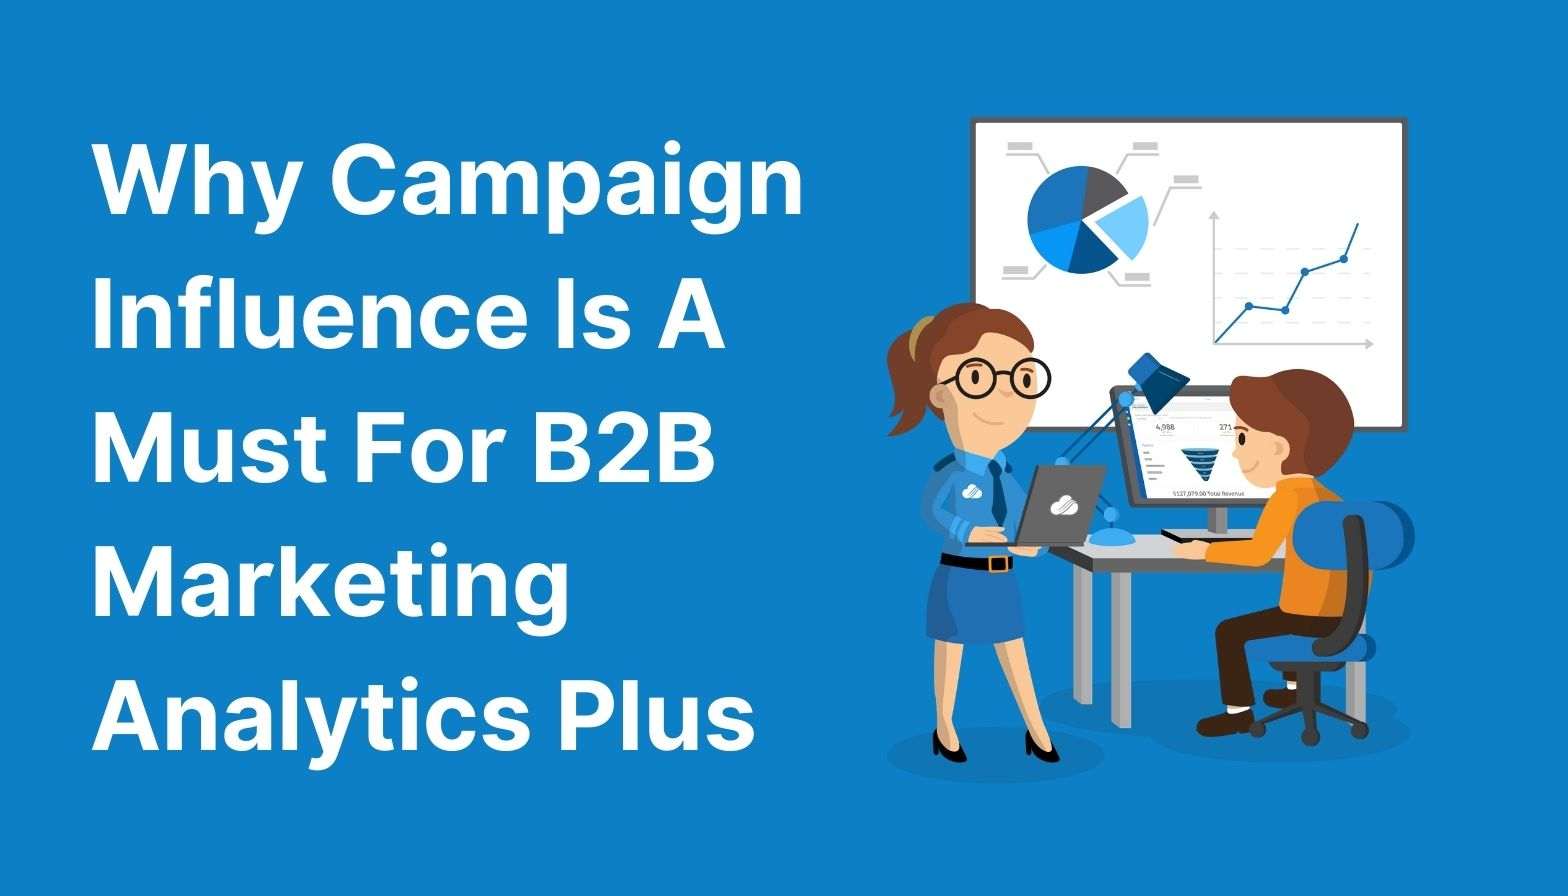 Why Campaign Influence Is a Must For B2B Marketing Analytics Plus